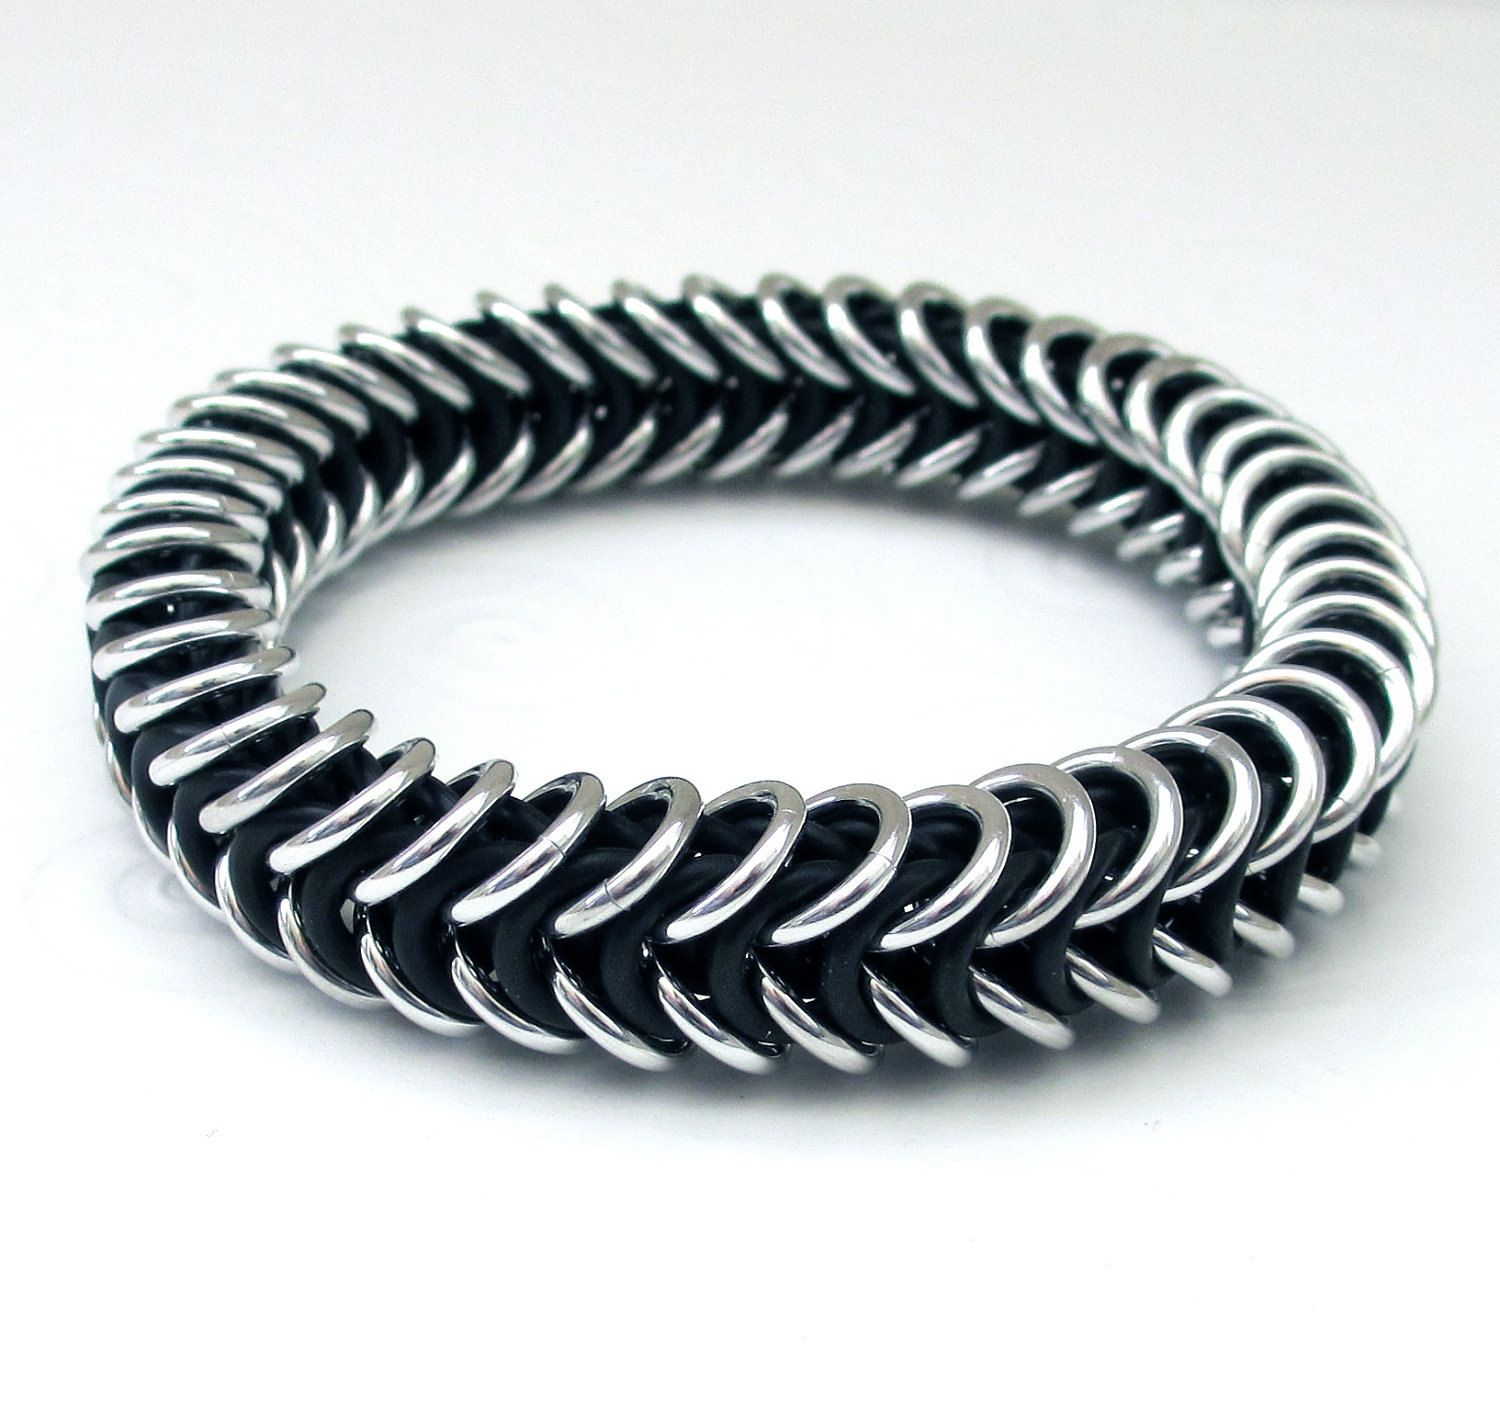 Black and silver stretchy chainmail bracelet for men or women ...